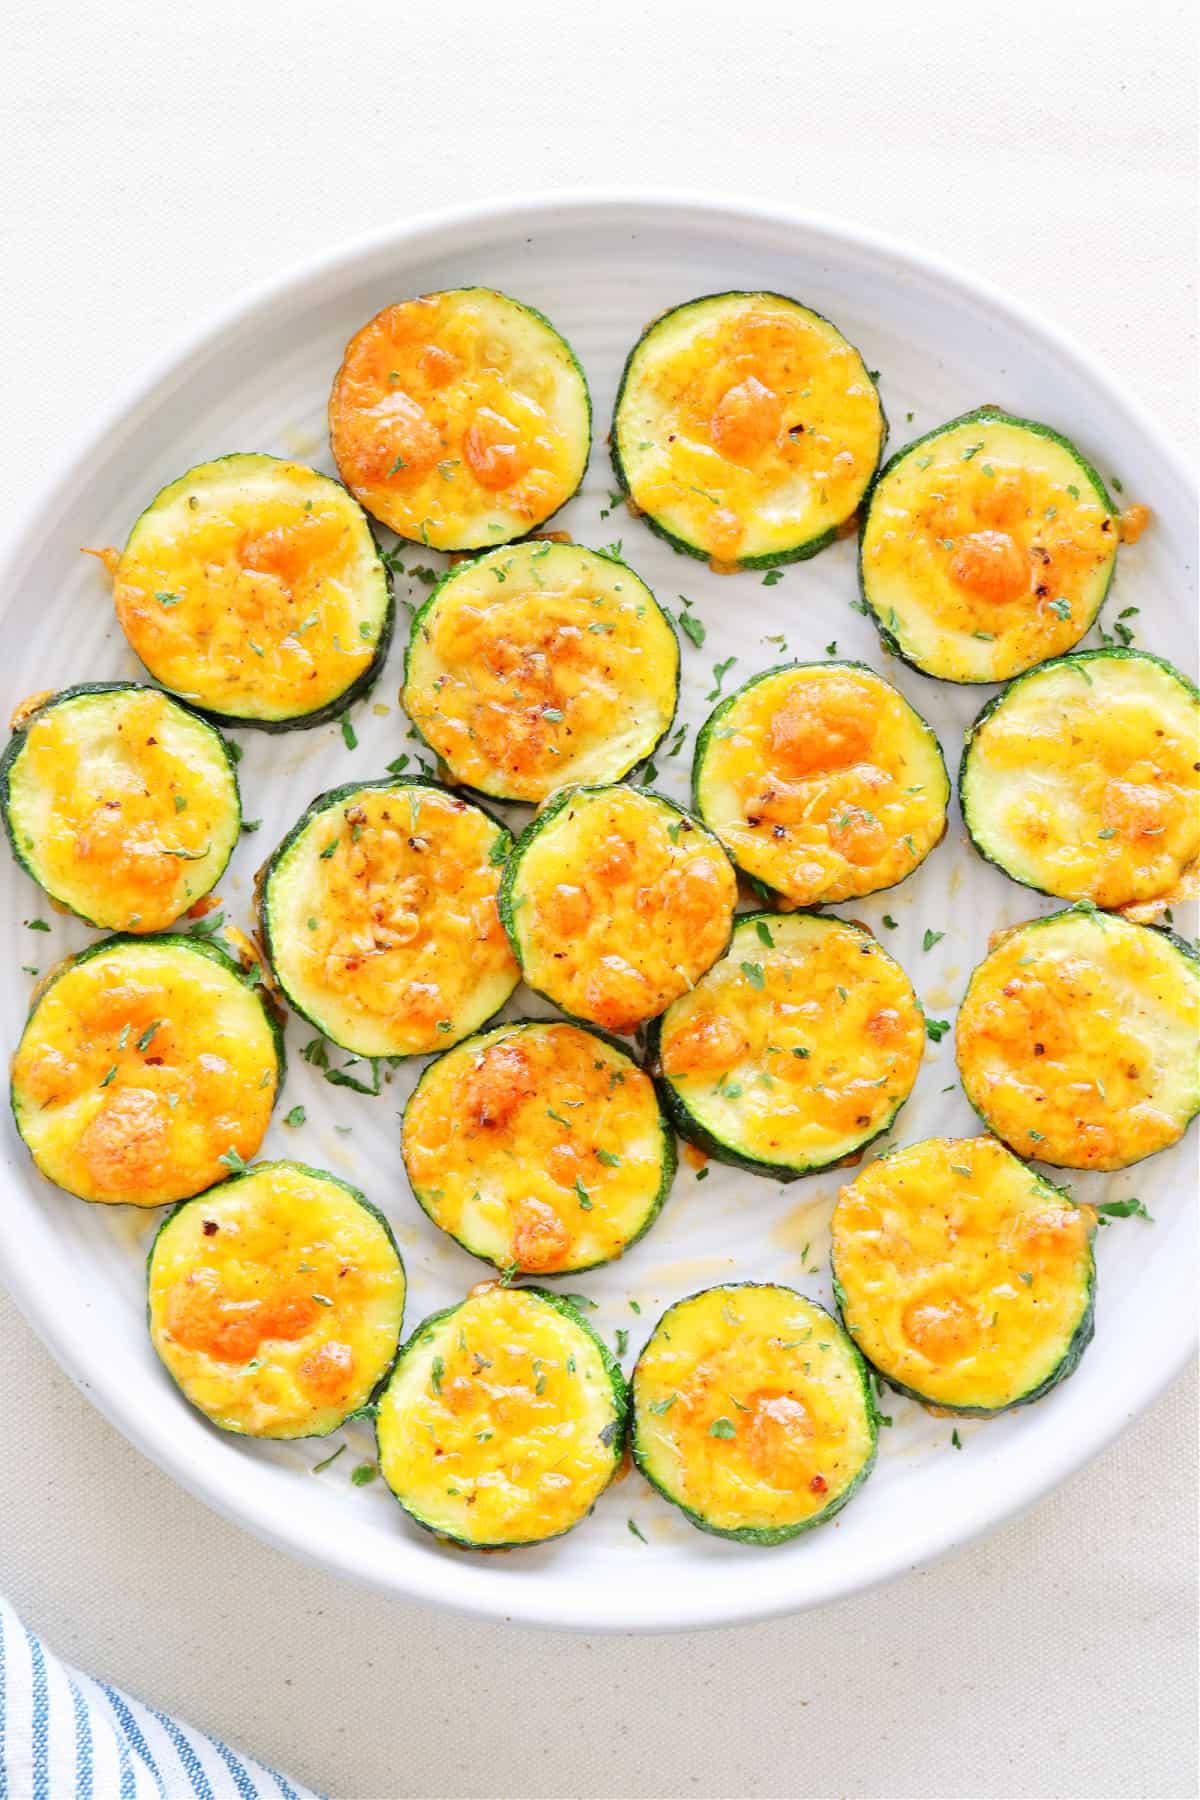 baked zucchini 4 Cheddar Baked Zucchini